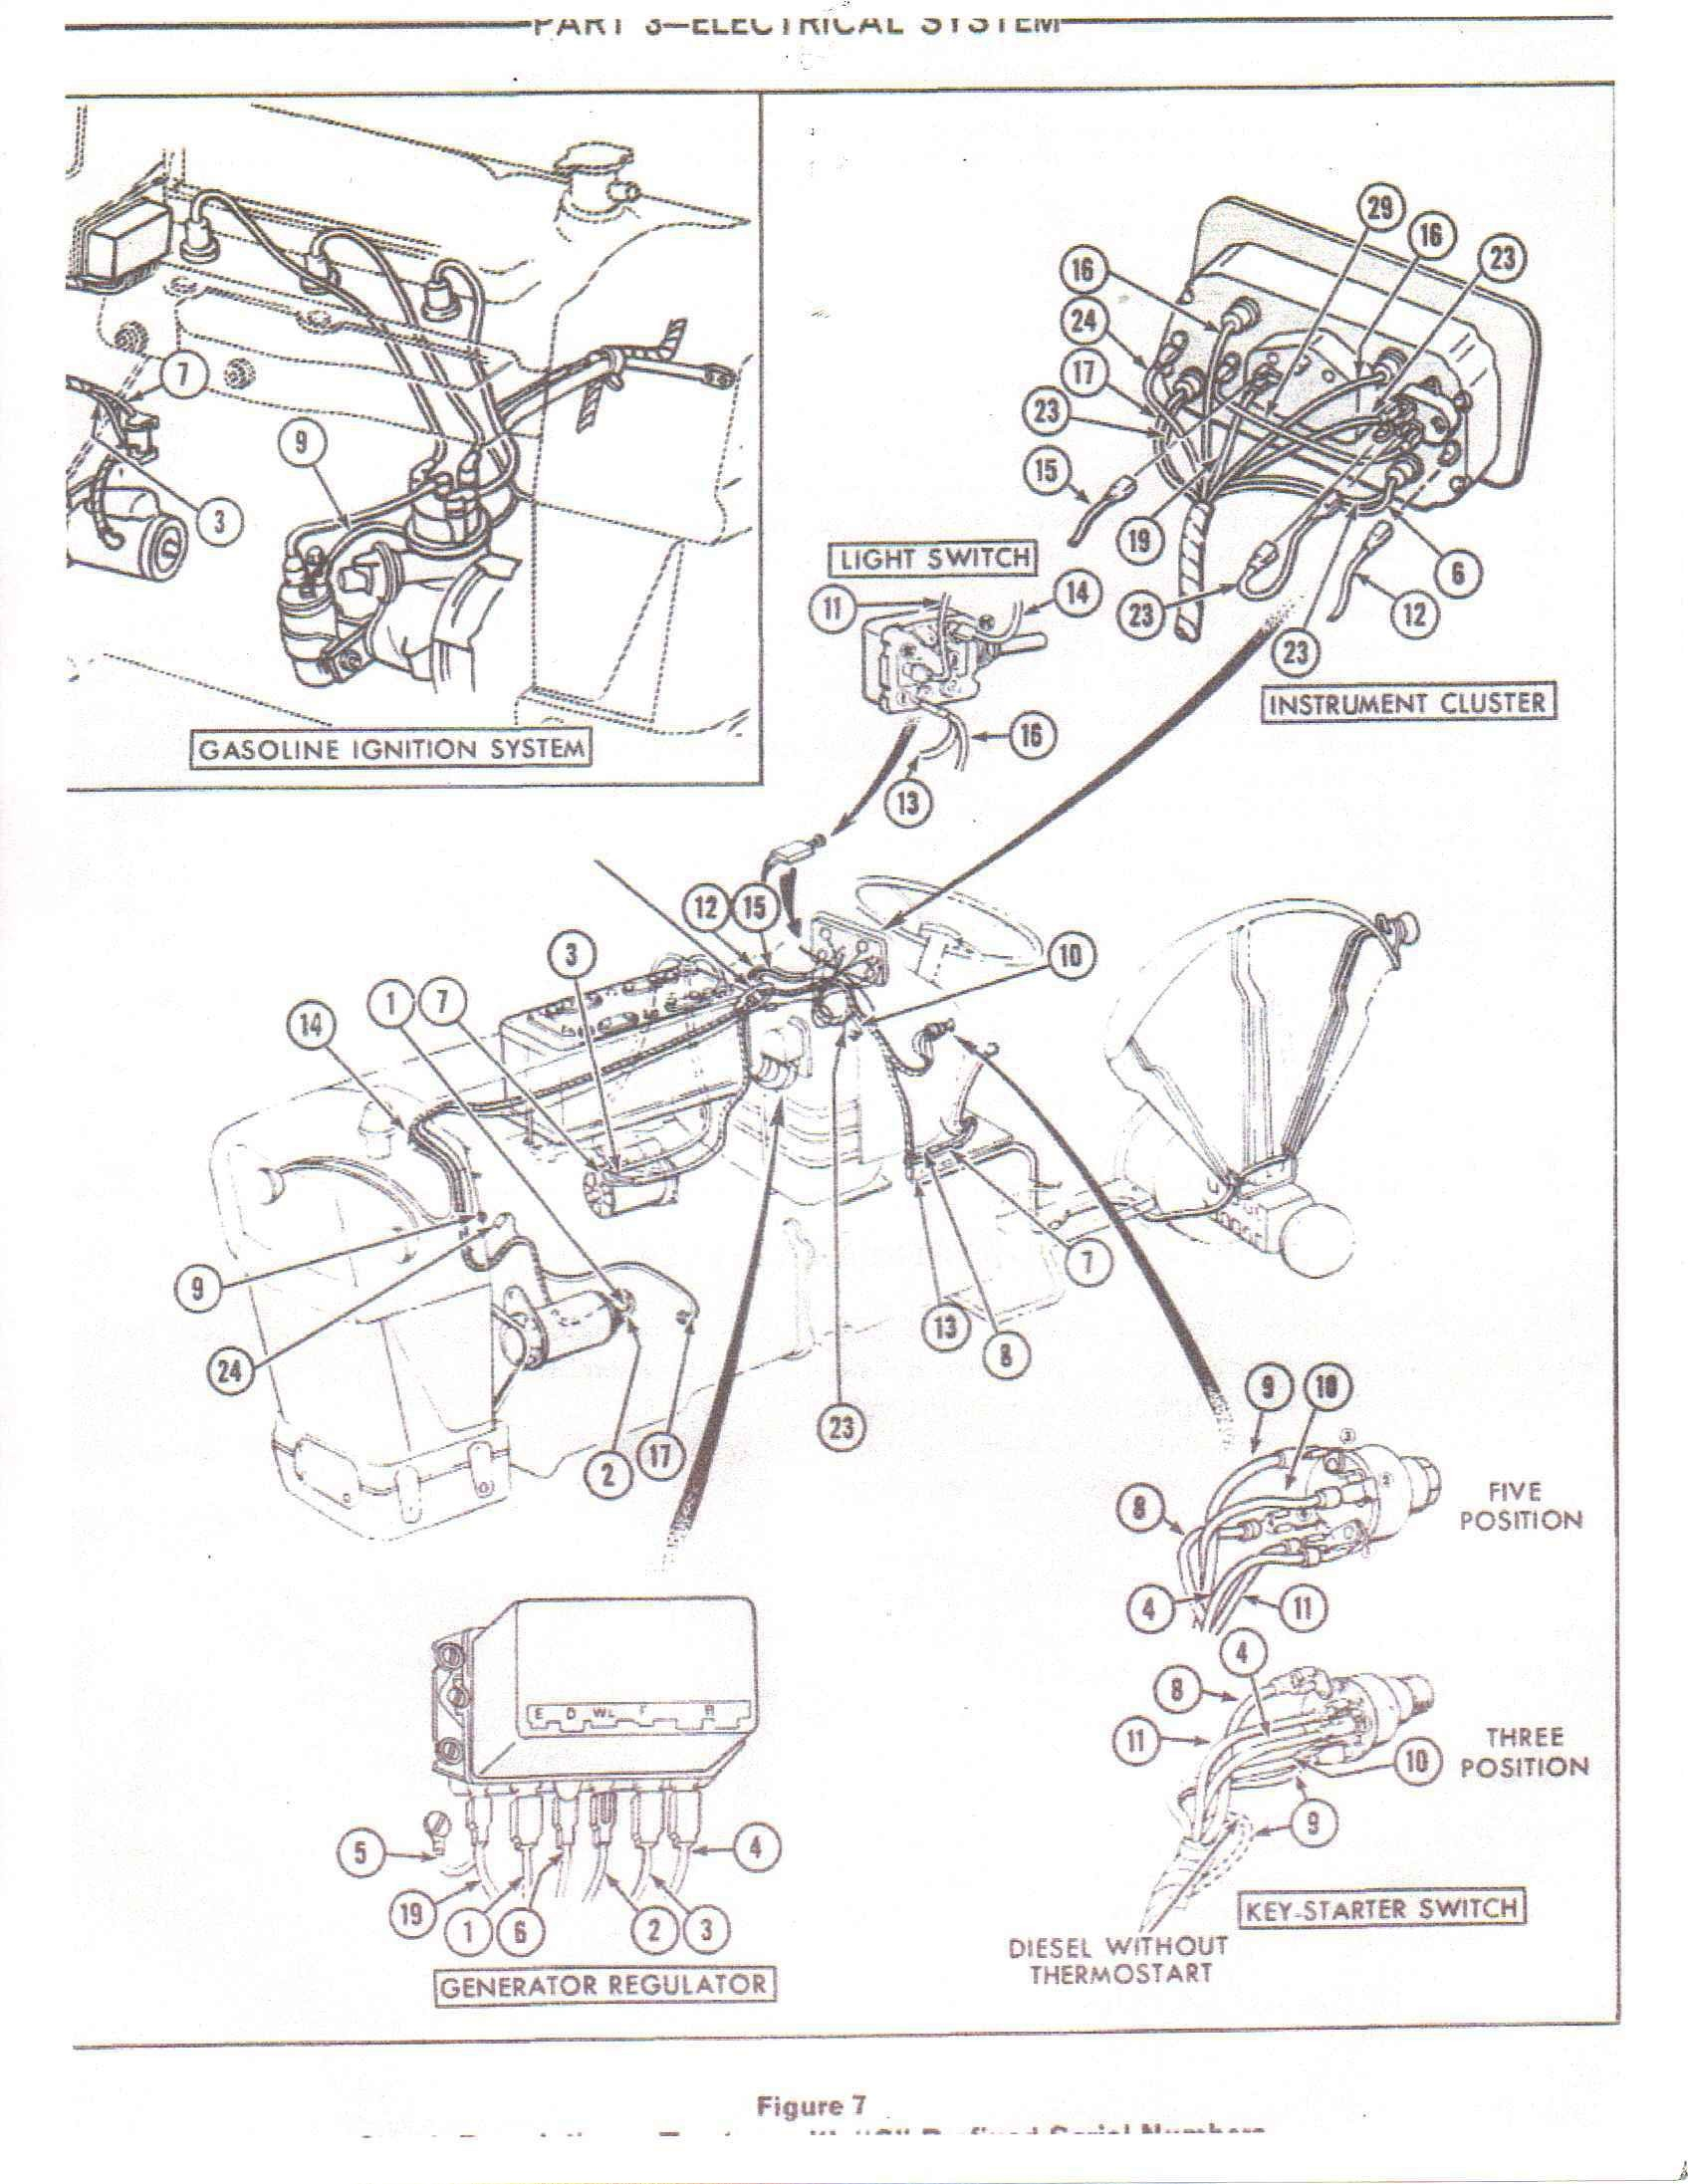 International Ignition Wiring Diagram Simple Diesel Tractor Harness Modern Design Of Ford Alternator Elegant Engine